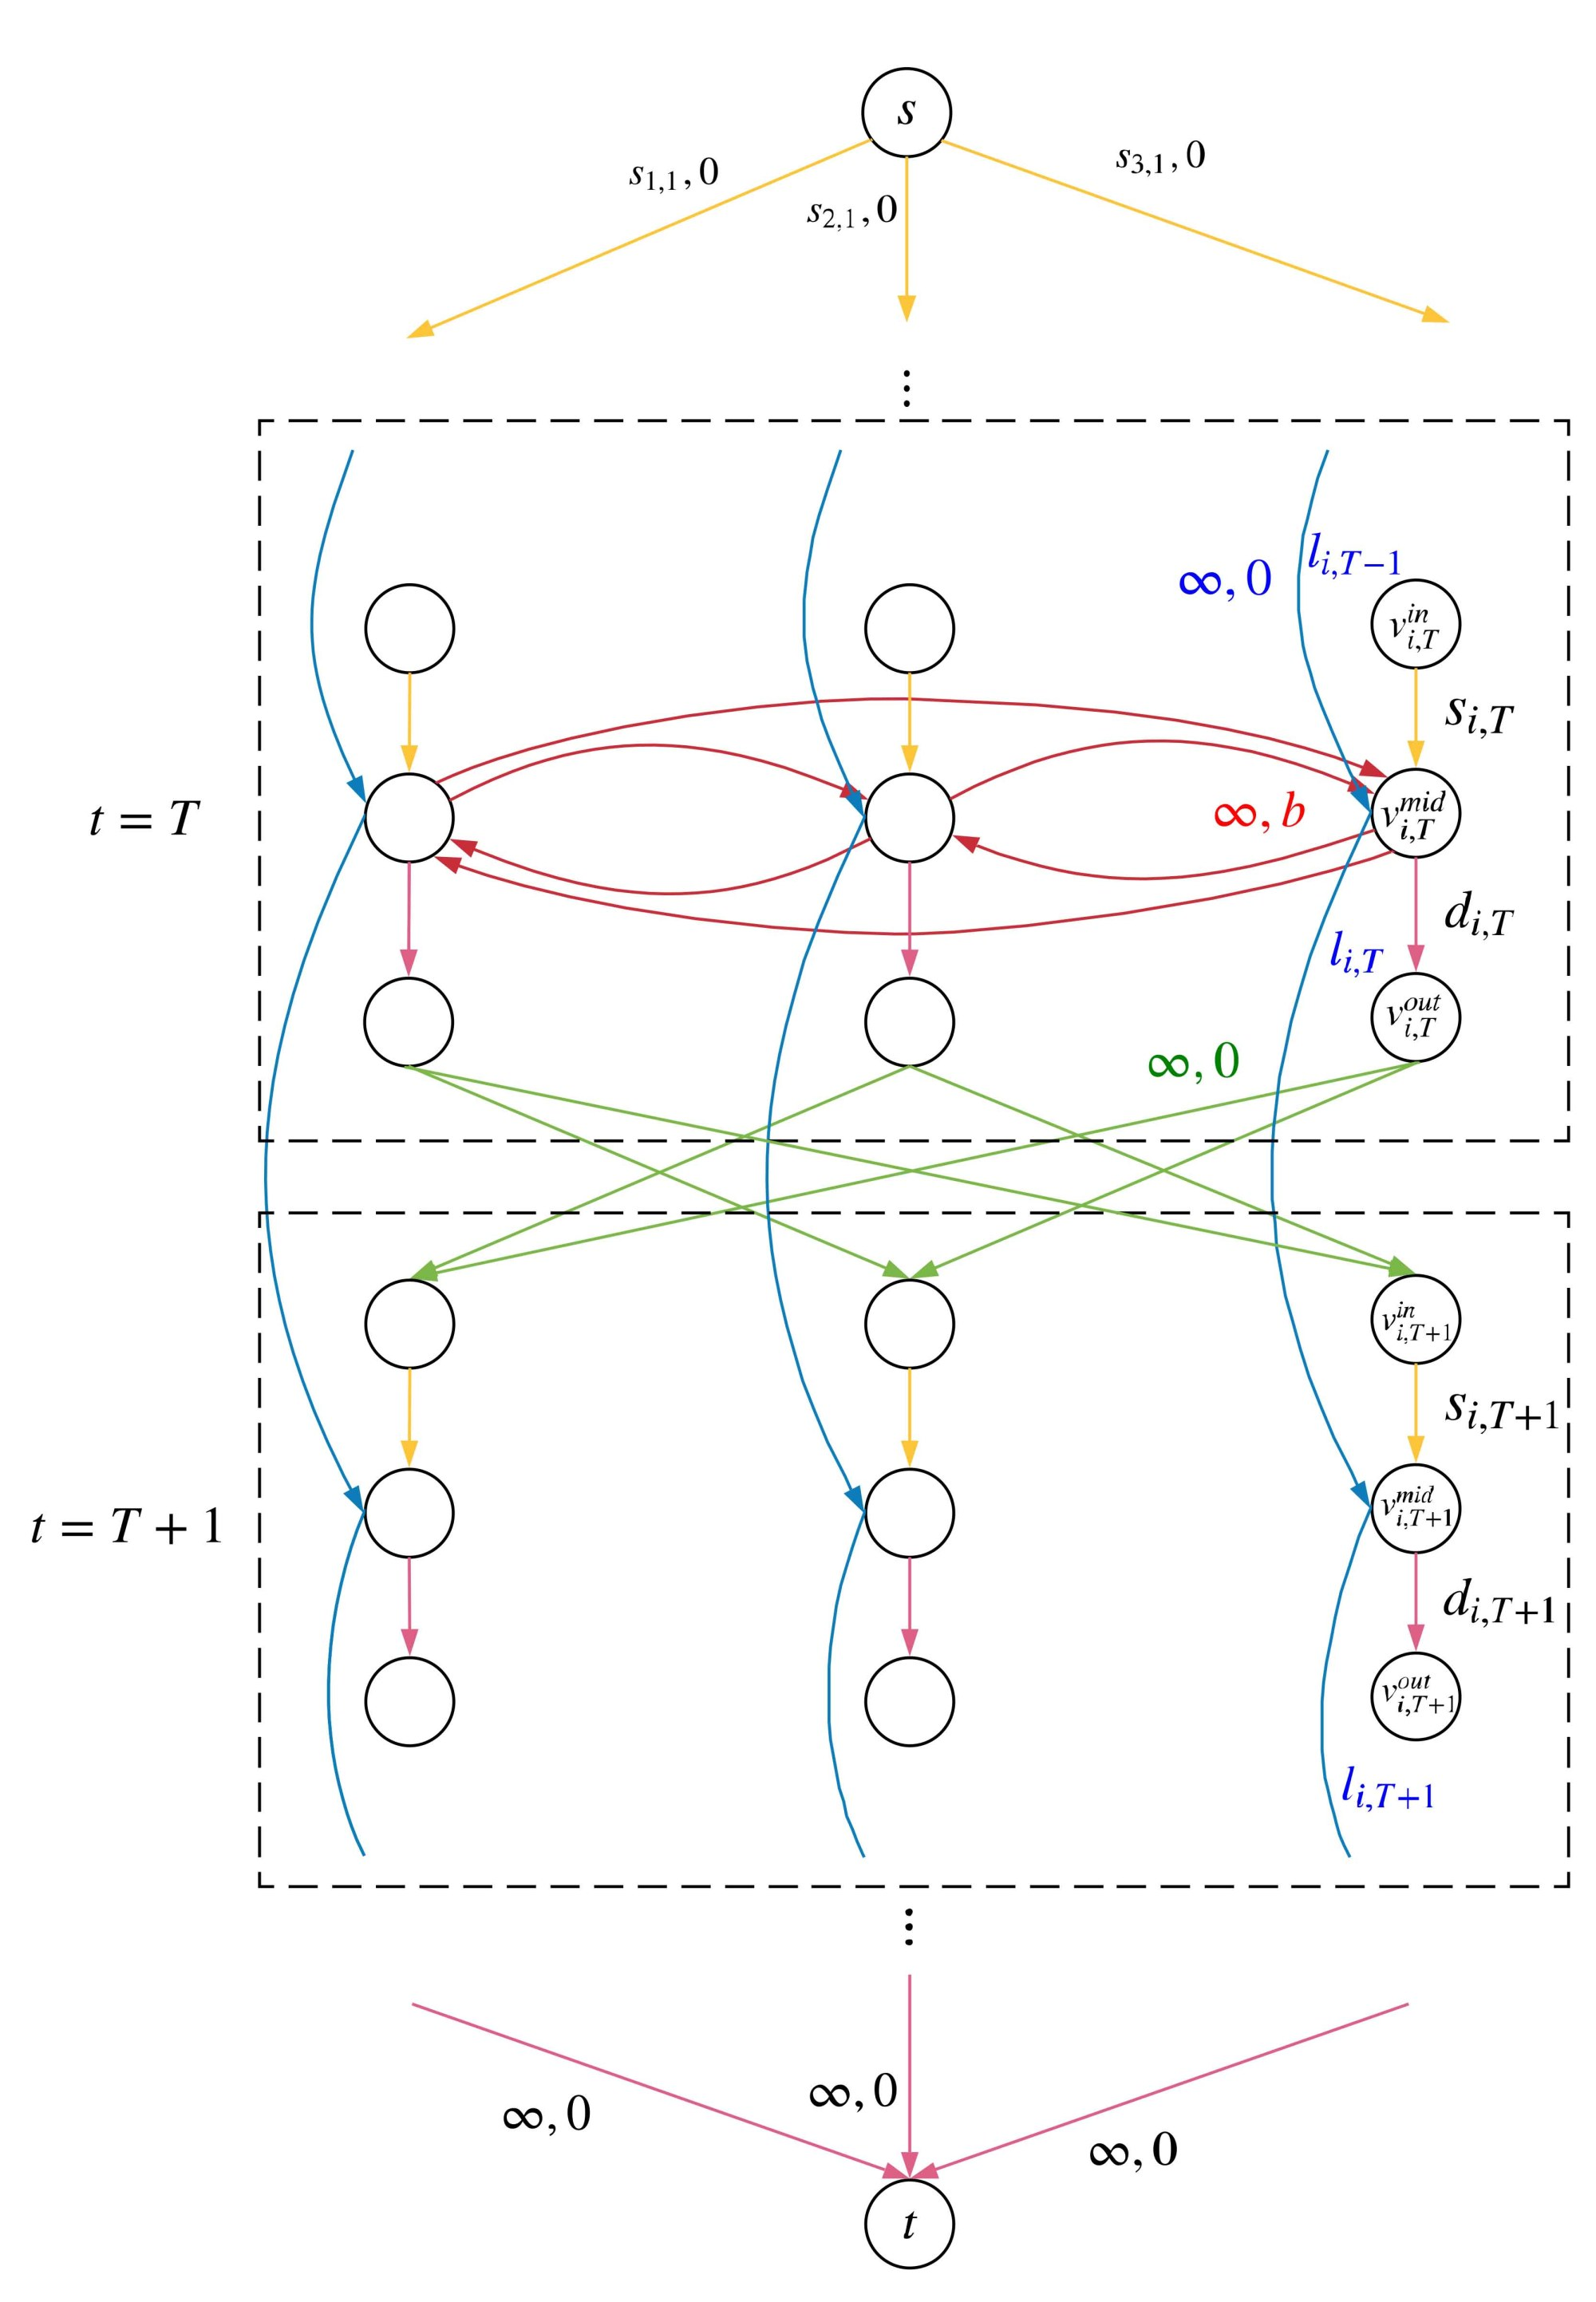 hight resolution of experiment results showed that our algorithm can find the optimal relocation solution of large networks in a reasonable time and with small trade off of